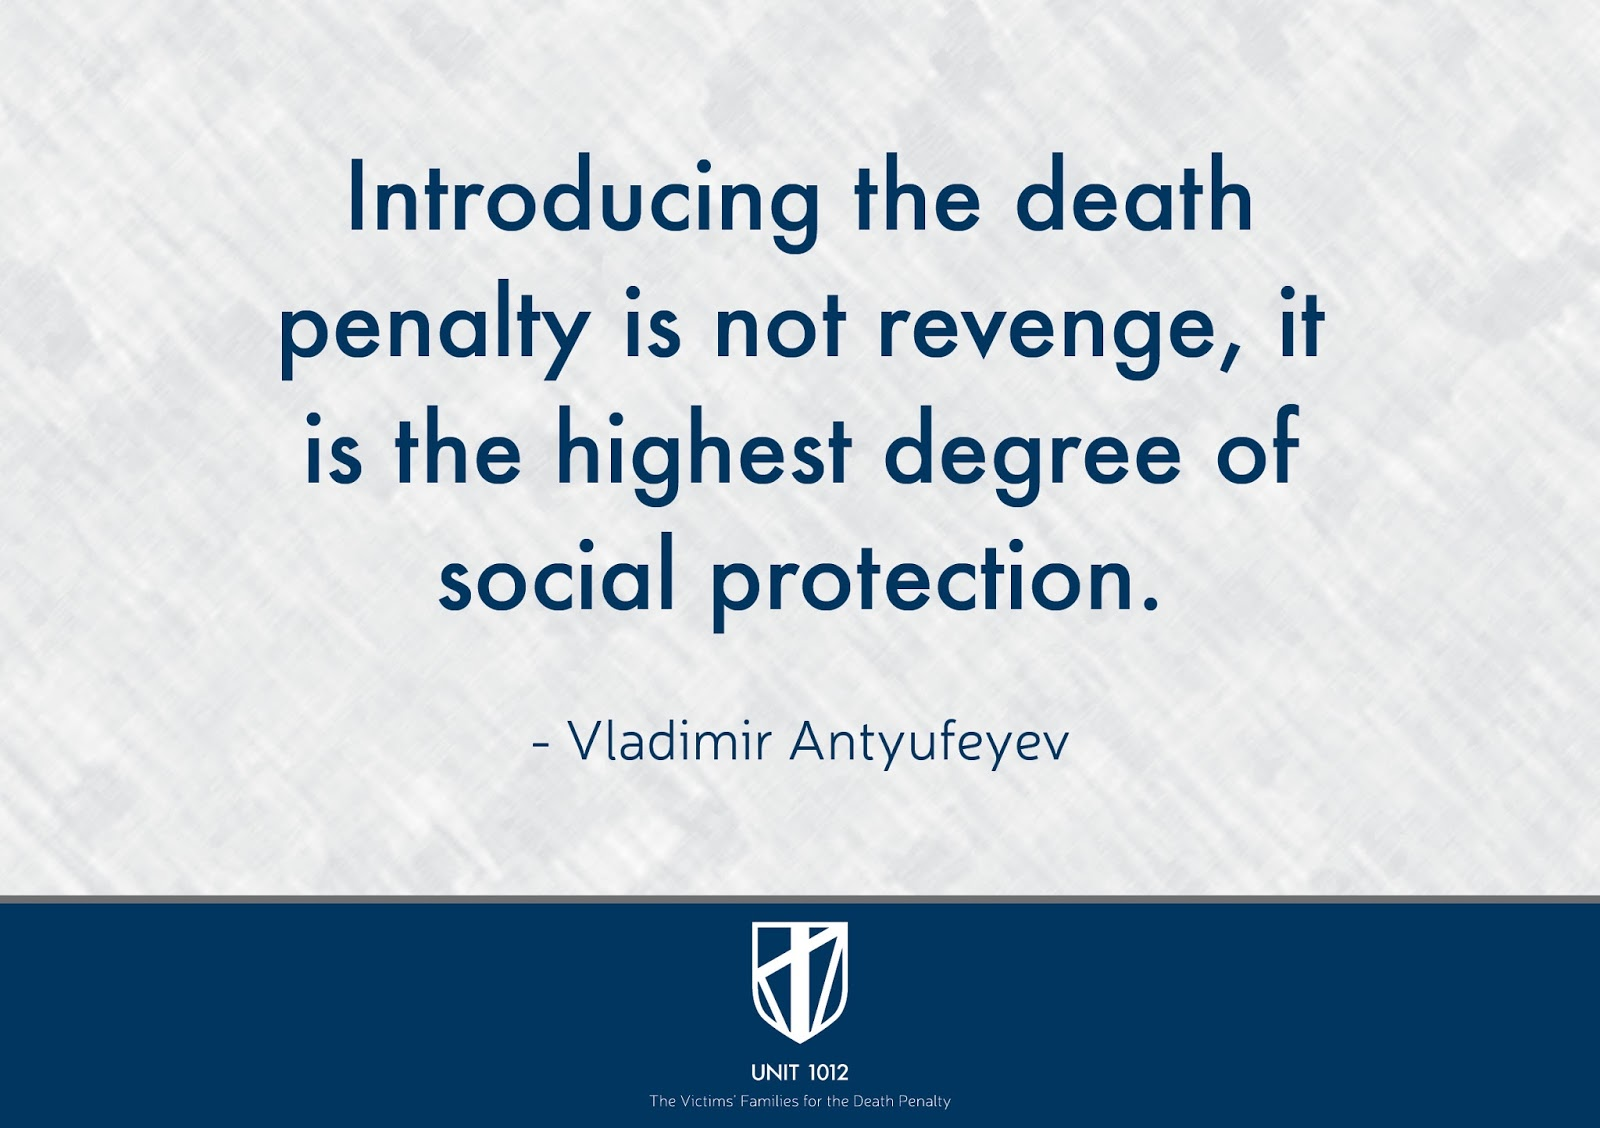 Quotes About The Death Penalty Unit 1012 The Victims' Families For The Death Penalty. Death